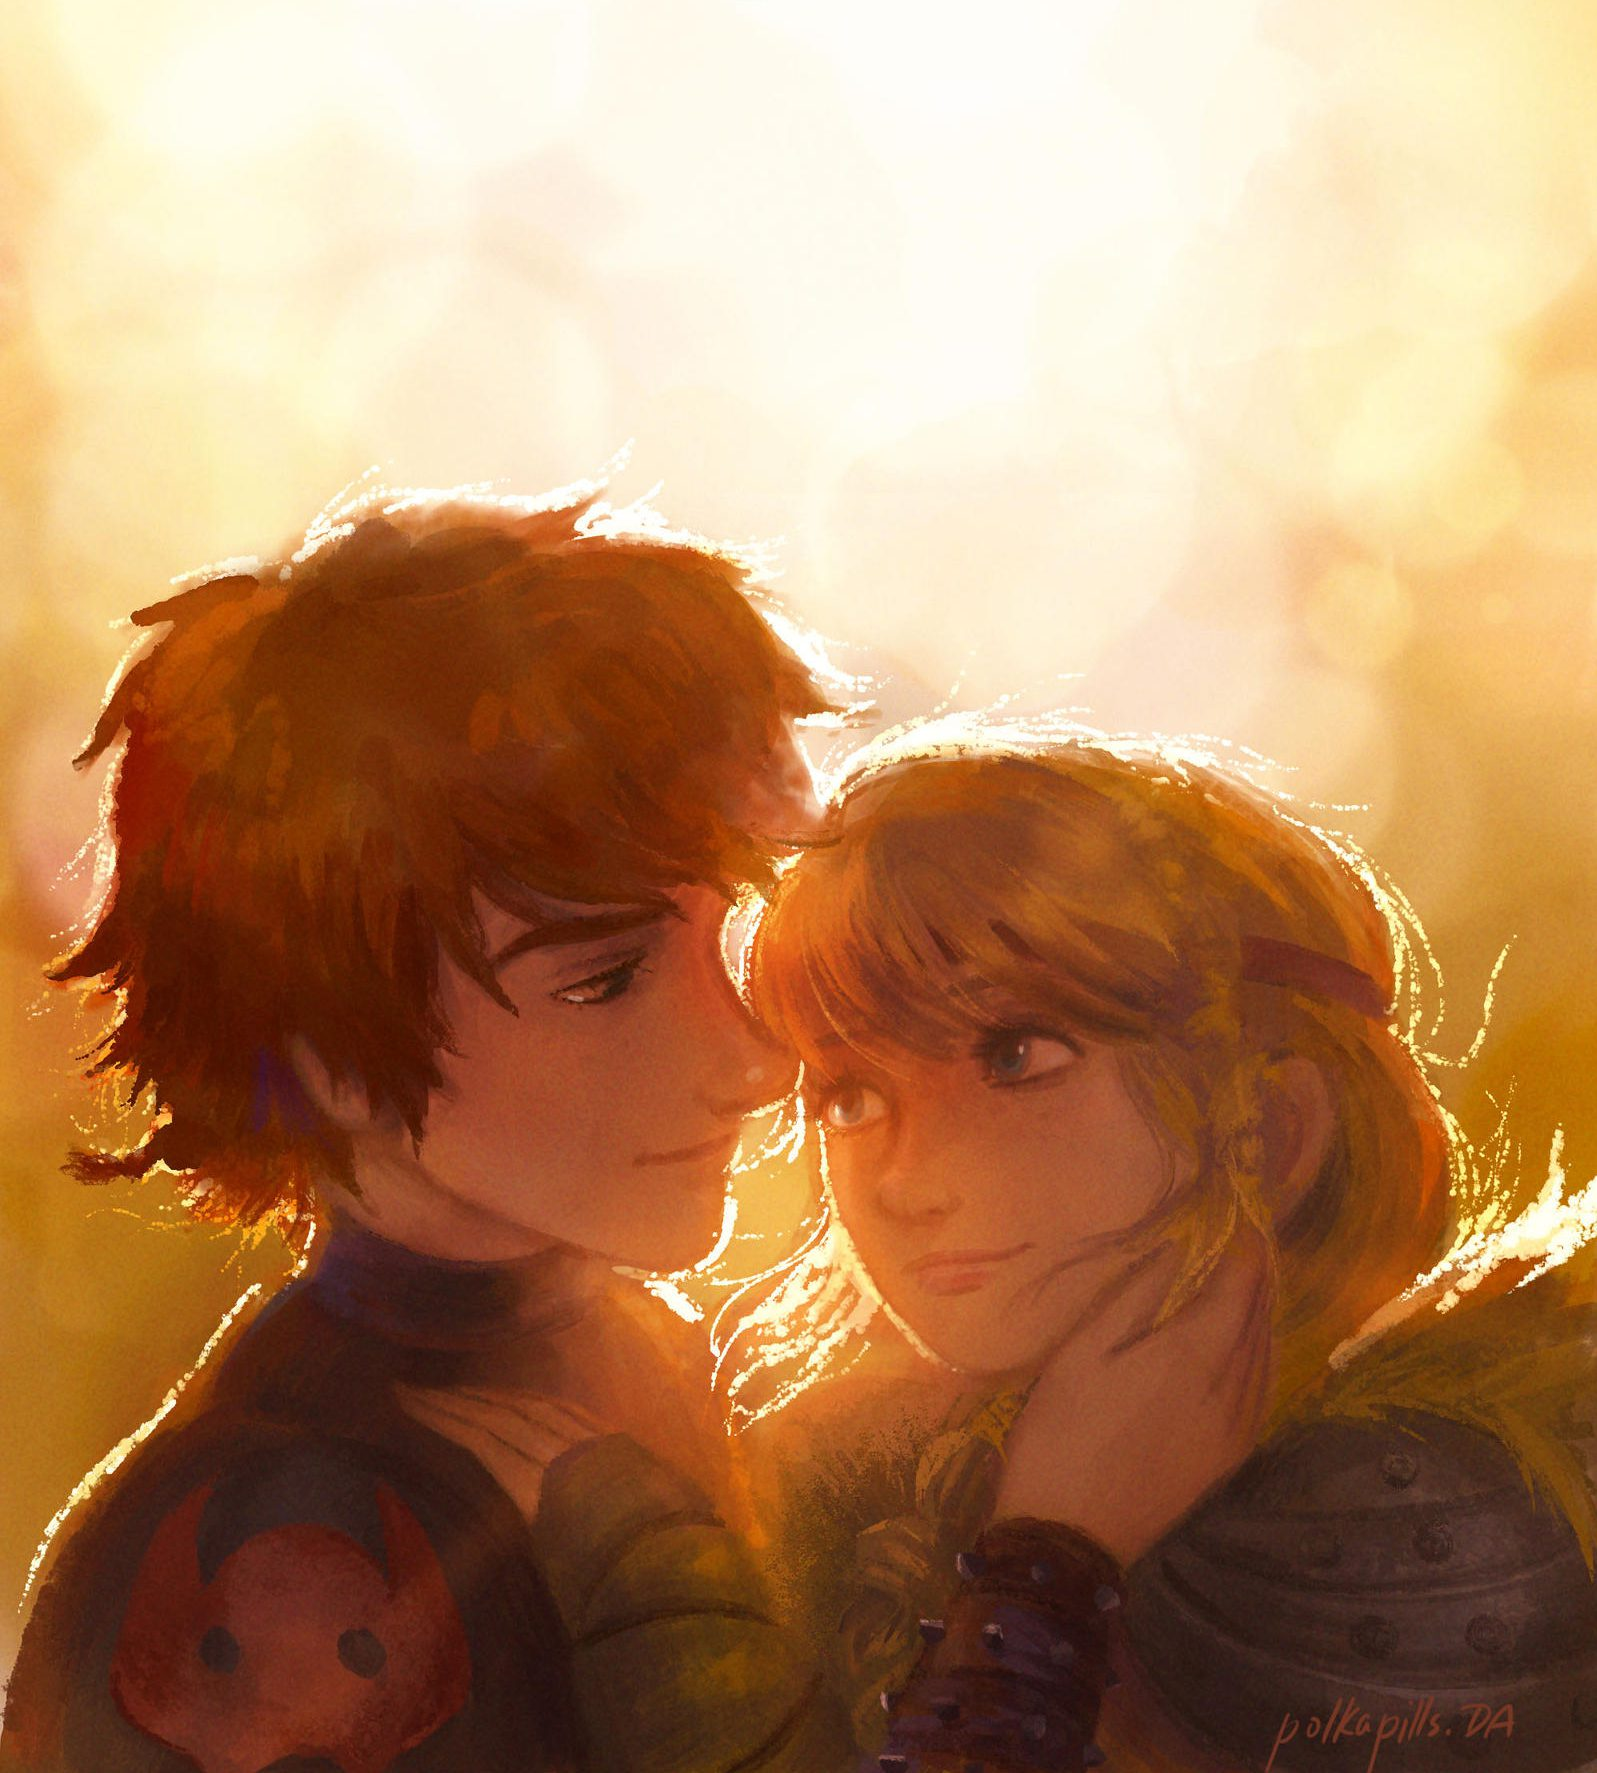 Hiccup and Astrid being affectionate to one another with a bright background and dragon flying in the sky.